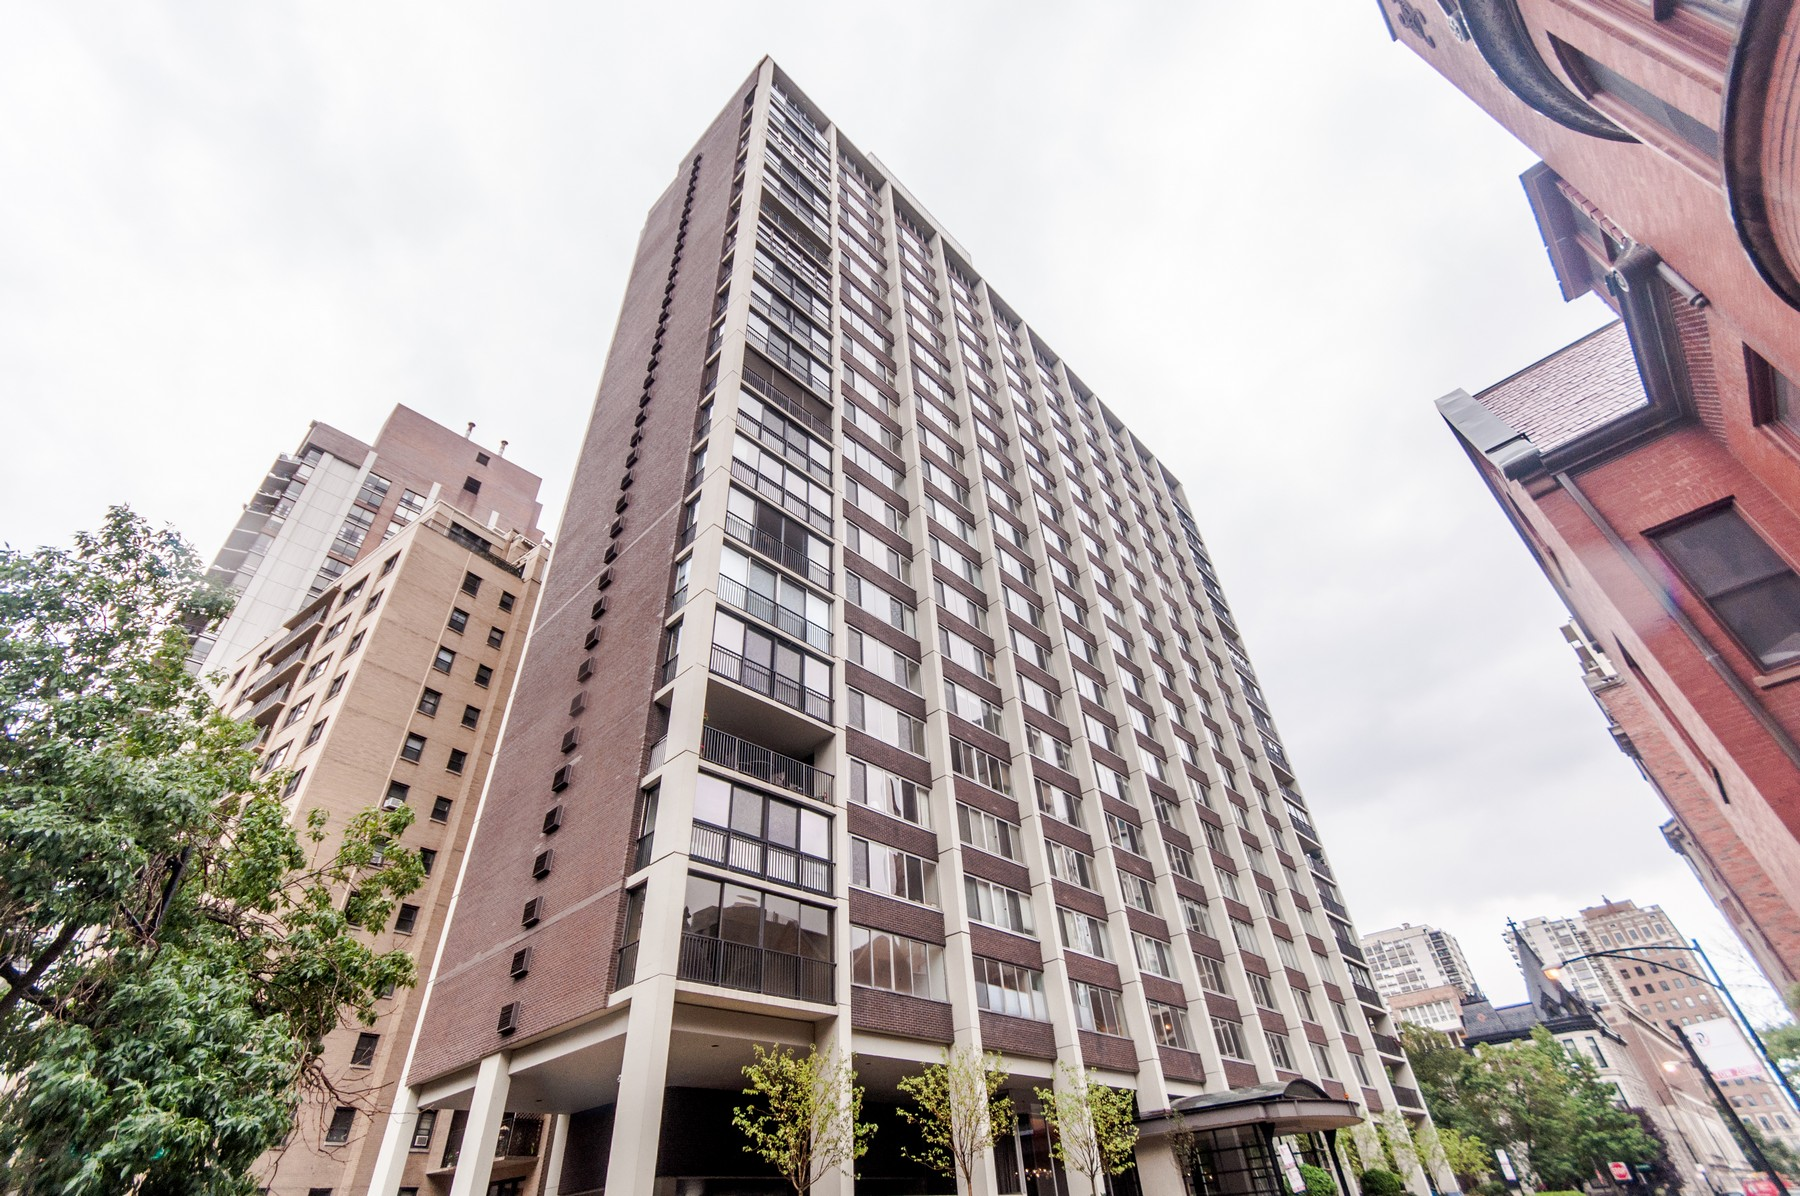 Copropriété pour l Vente à Updated Gold Coast Condo 1 E Schiller Street Unit 3B Near North Side, Chicago, Illinois, 60610 États-Unis